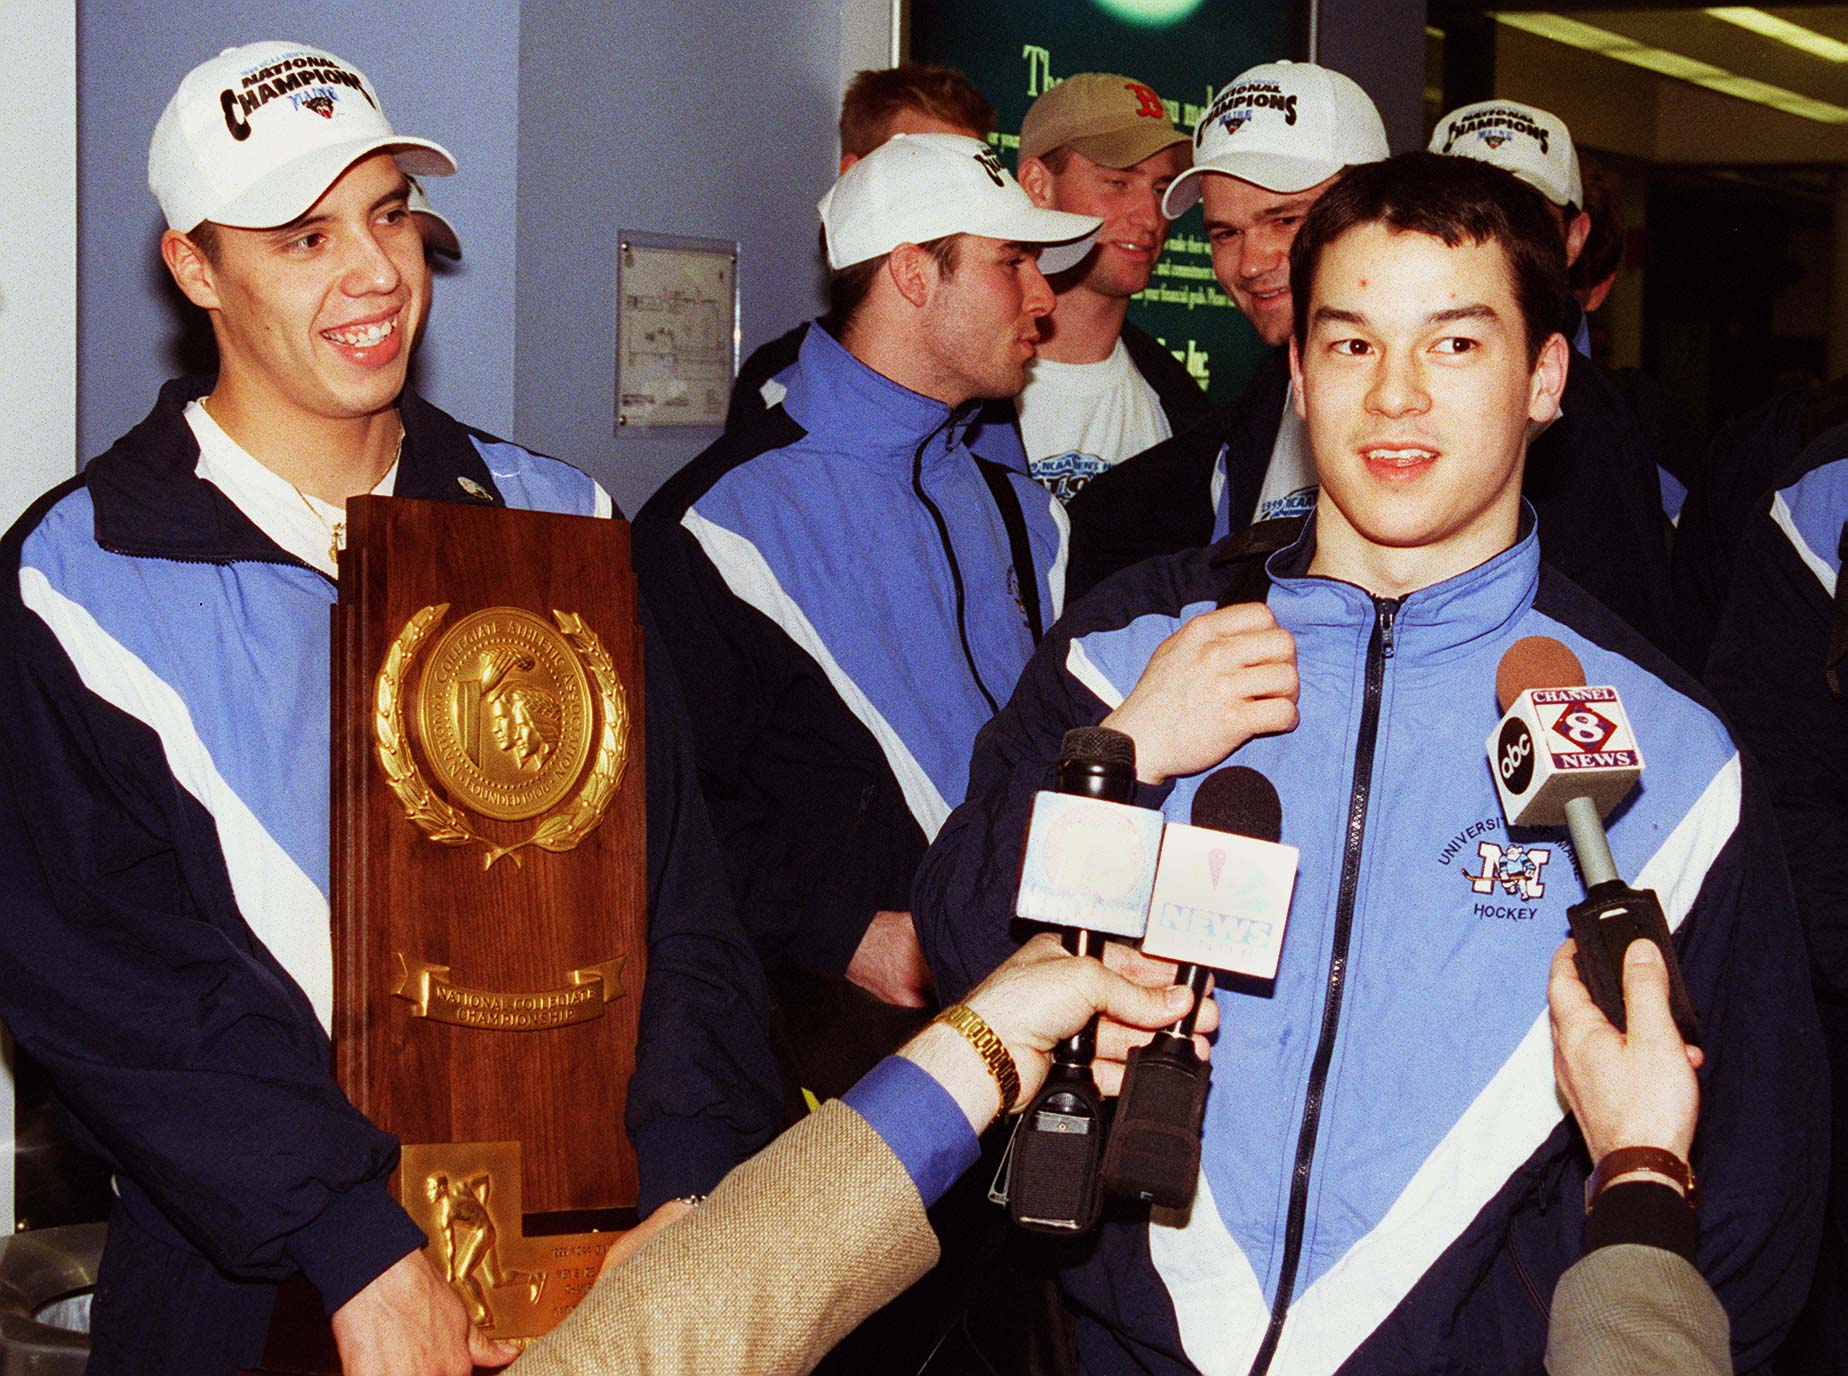 separation shoes c92ce e2b0b University of Maine goalie Alfie Michaud holds the national championship  trophy as forward Steve Kariya answers questions from the media in Portland  after ...